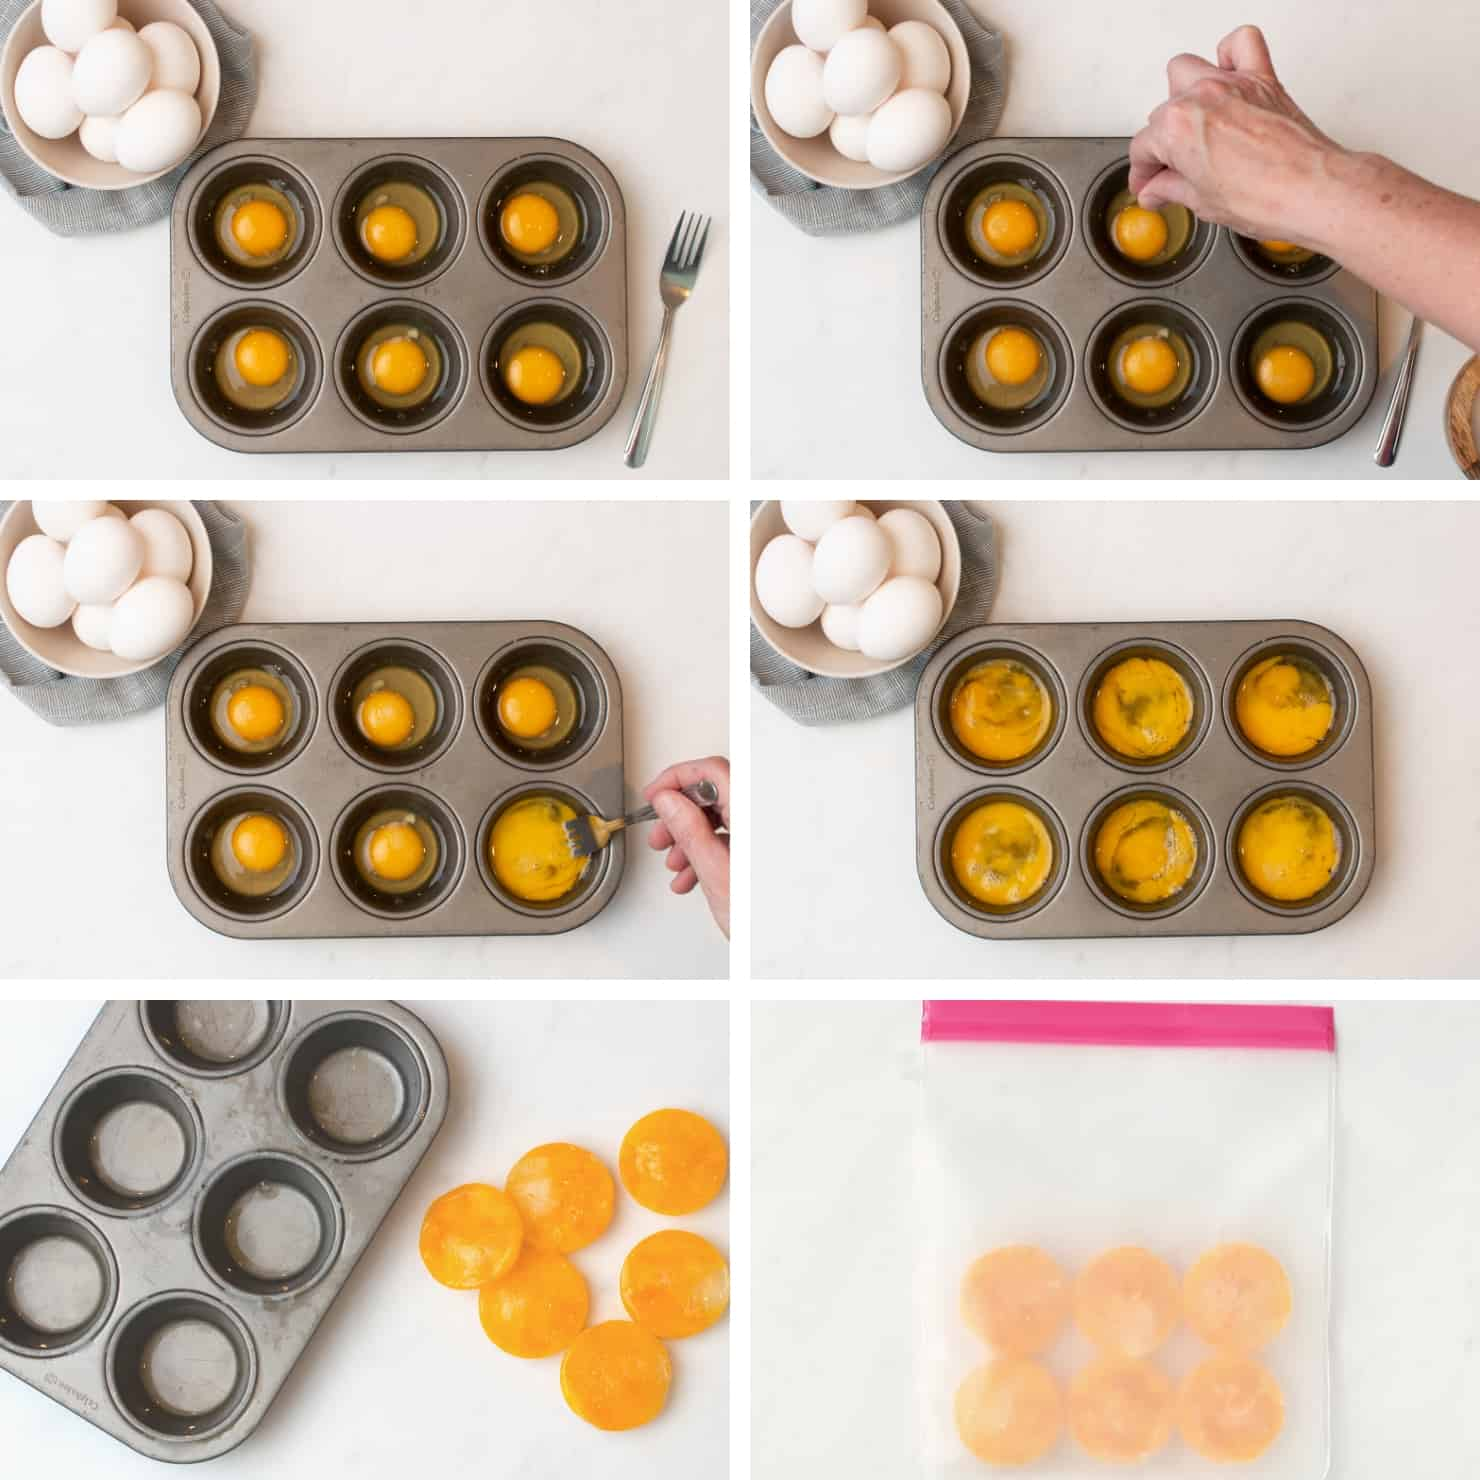 Can you freeze eggs? YES you can! Here is a post on how to properly freeze eggs to use later. - step-by-step directions on how to freeze eggs properly in muffin tray